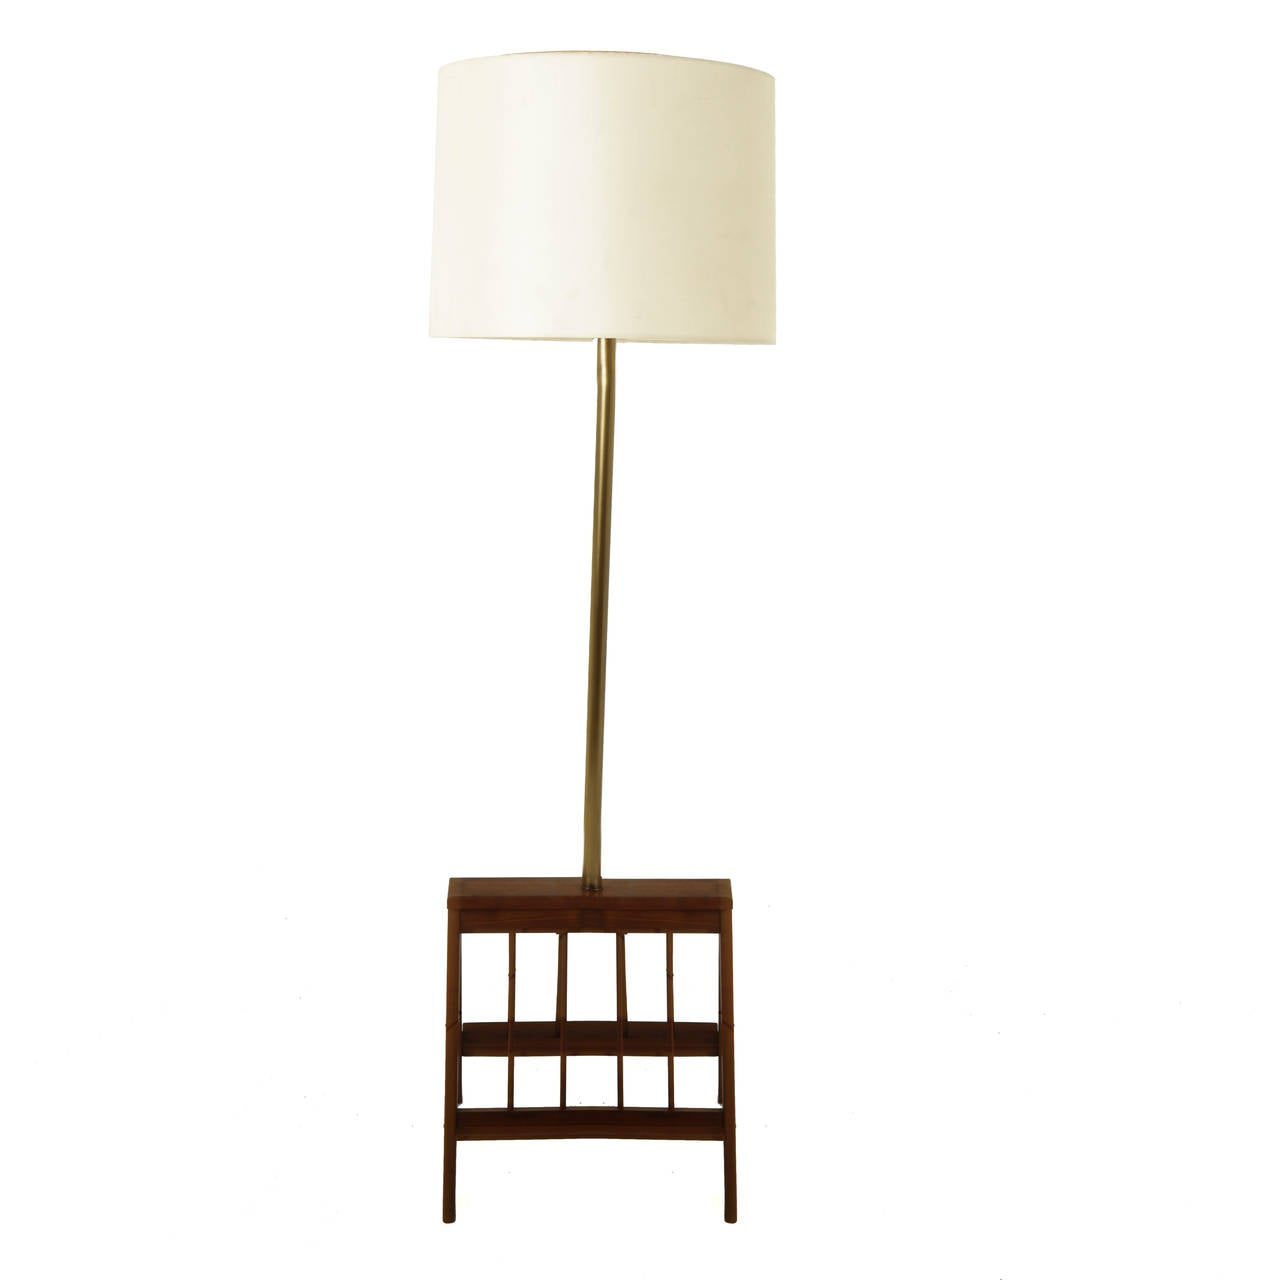 Solid Walnut Floor Lamp With Magazine Shelves At 1stdibs